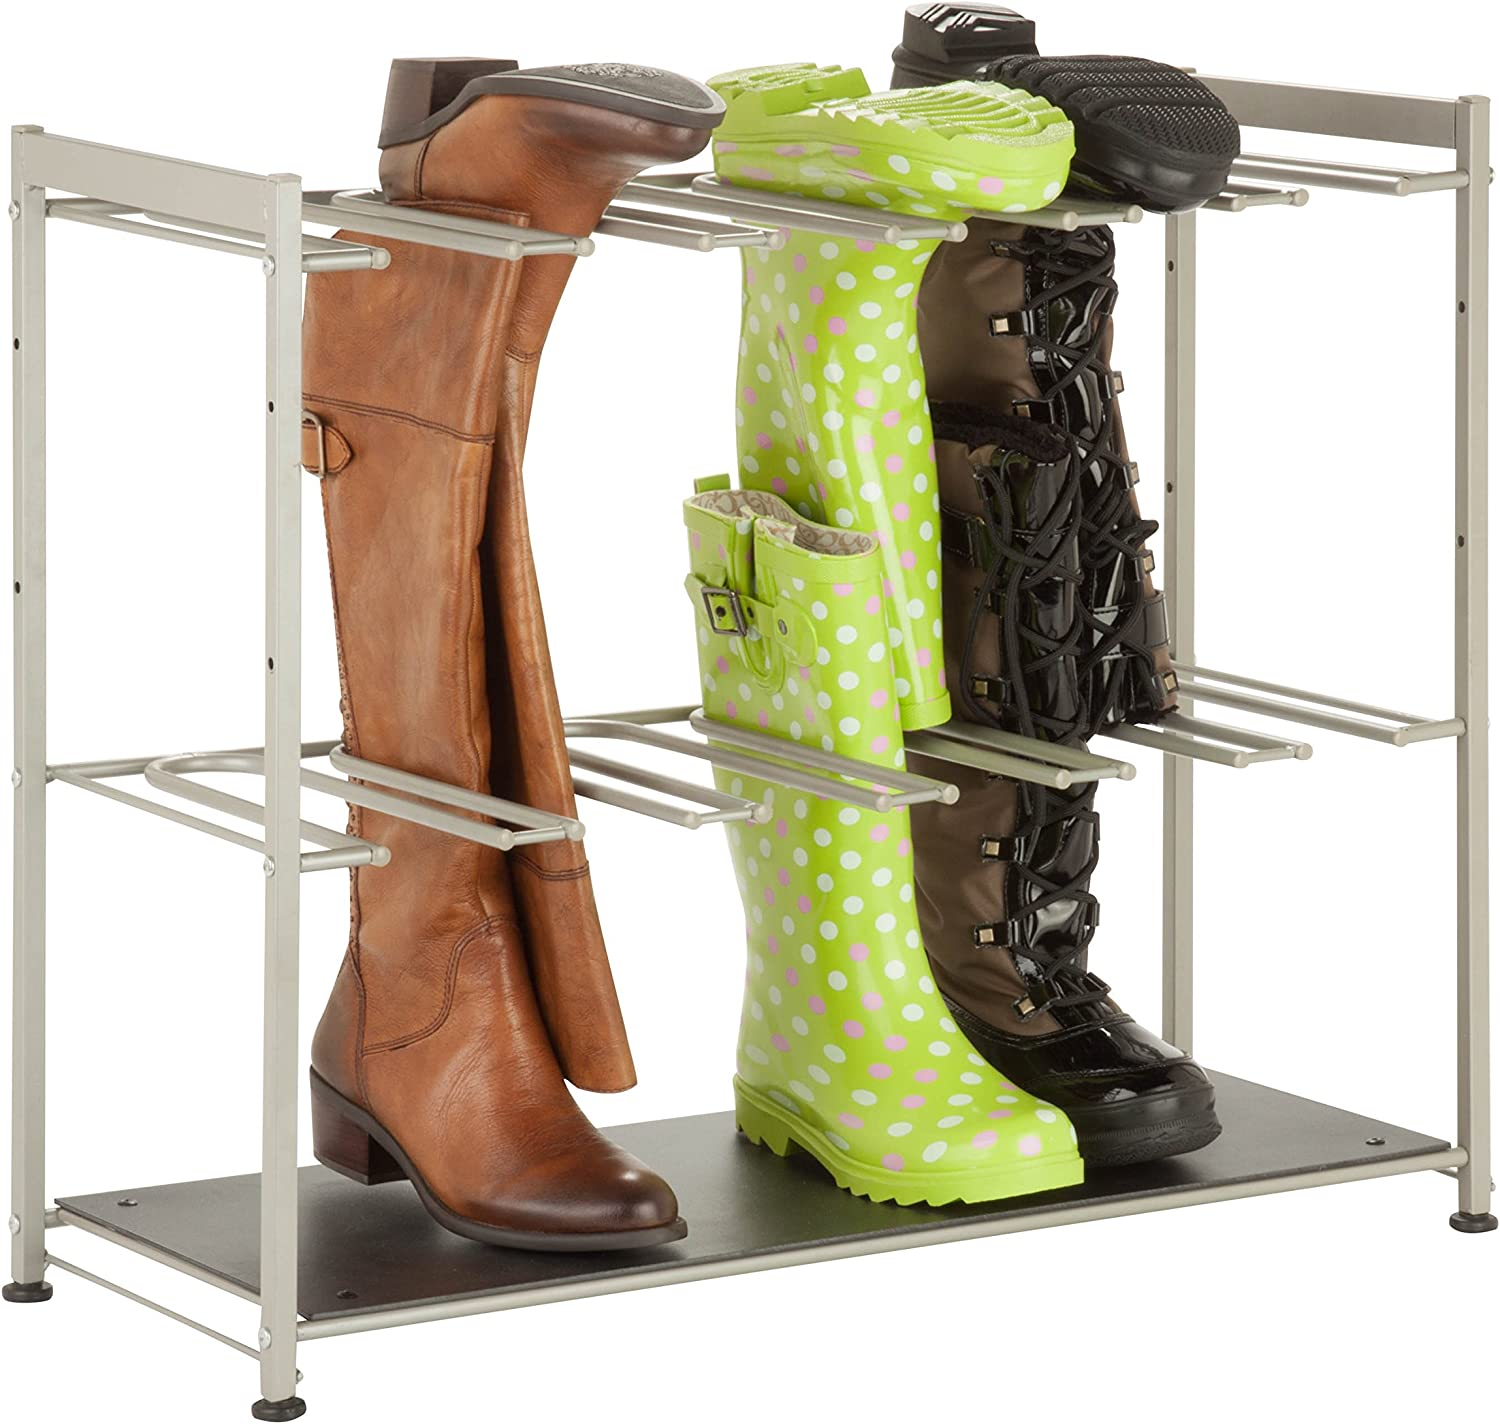 Amazon Com Honey Can Do Sho 02812 6 Pair Boot Rack 27 5 X 10 75 X 22 5 Silver Home Kitchen